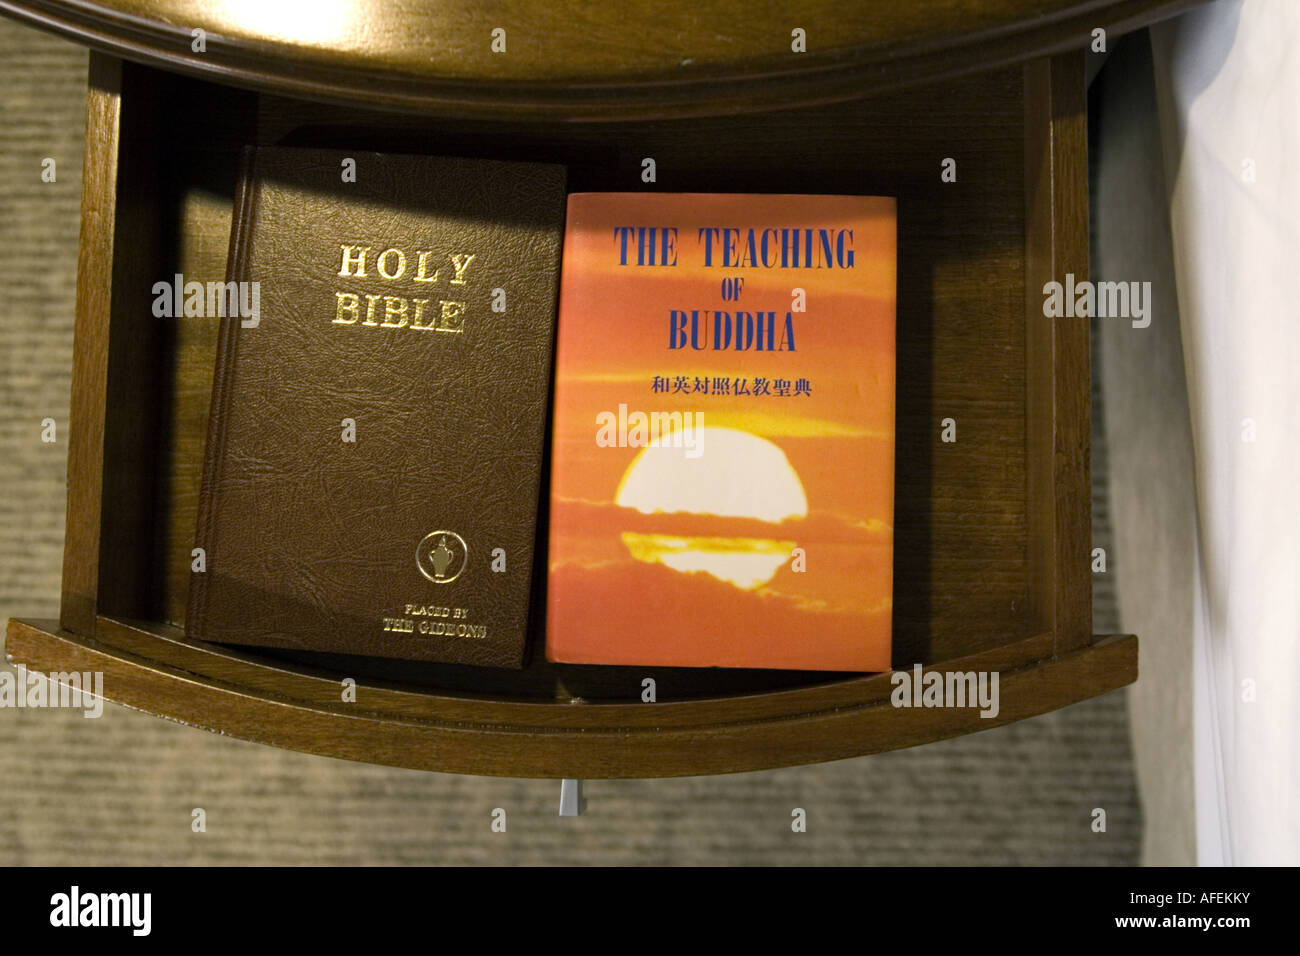 Bible and Teachings of Buddha in asian hotel room - Stock Image